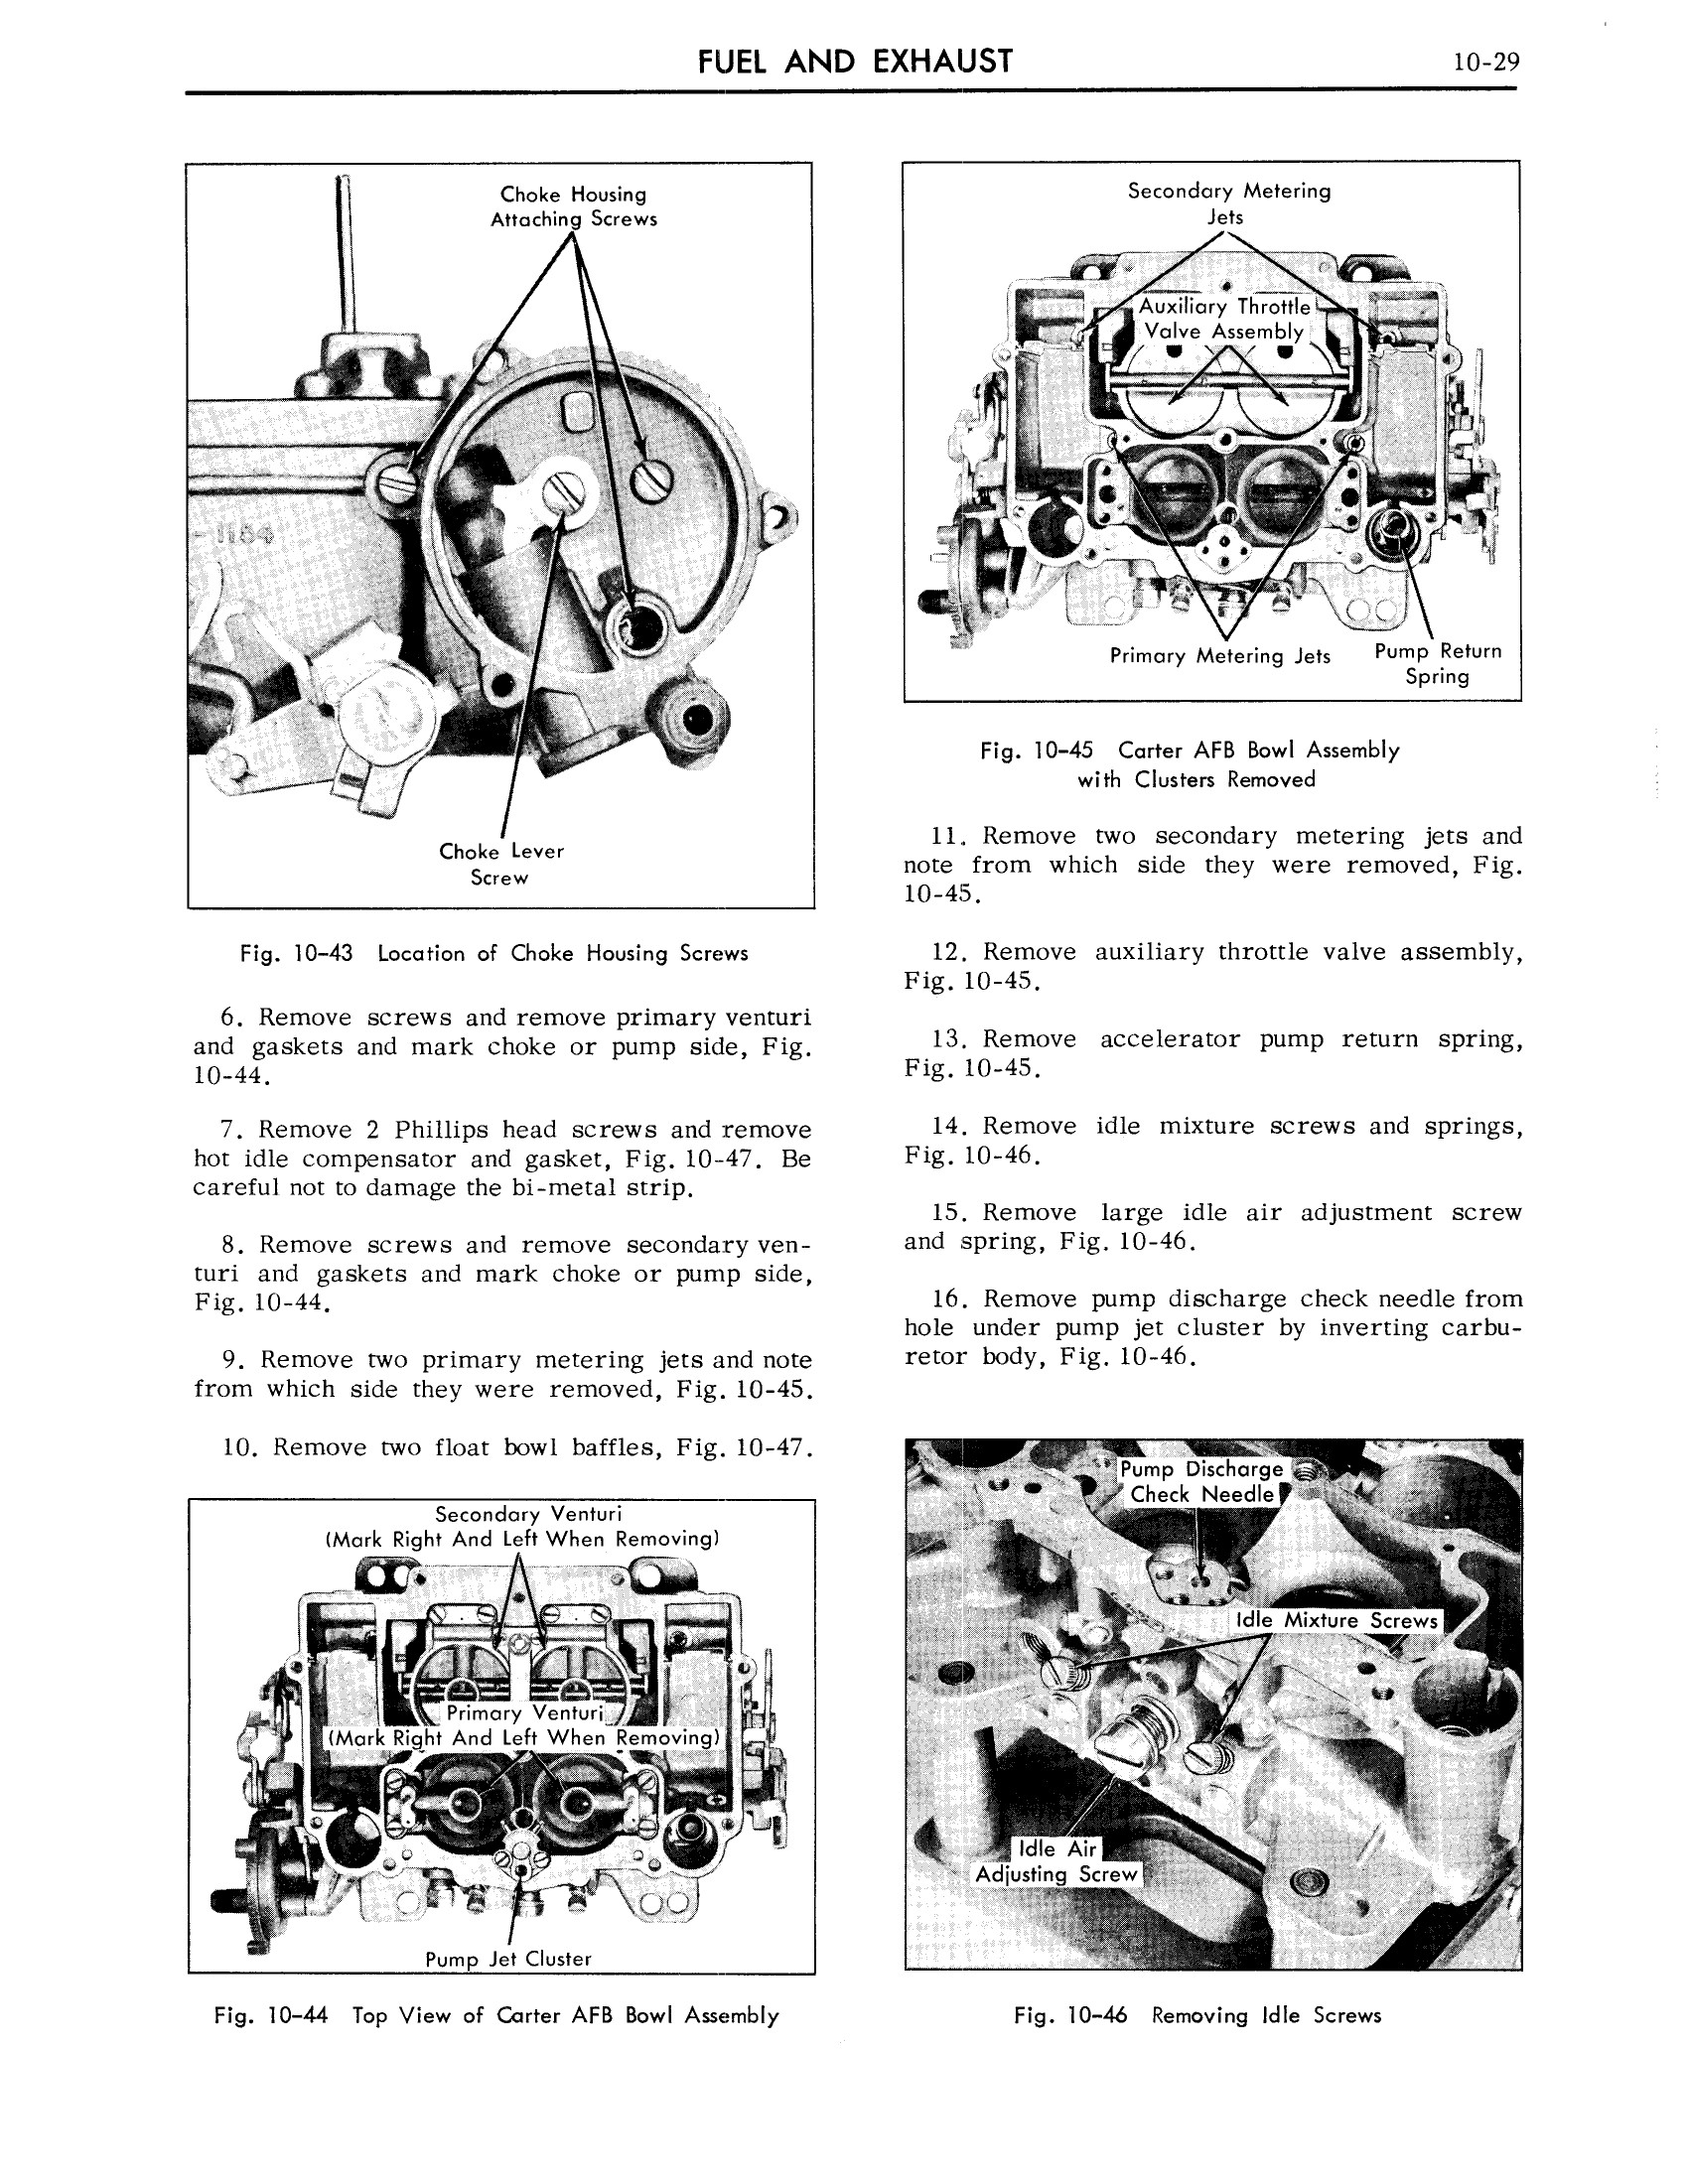 1959 Cadillac Shop Manual- Engine Fuel and Exhaust Page 29